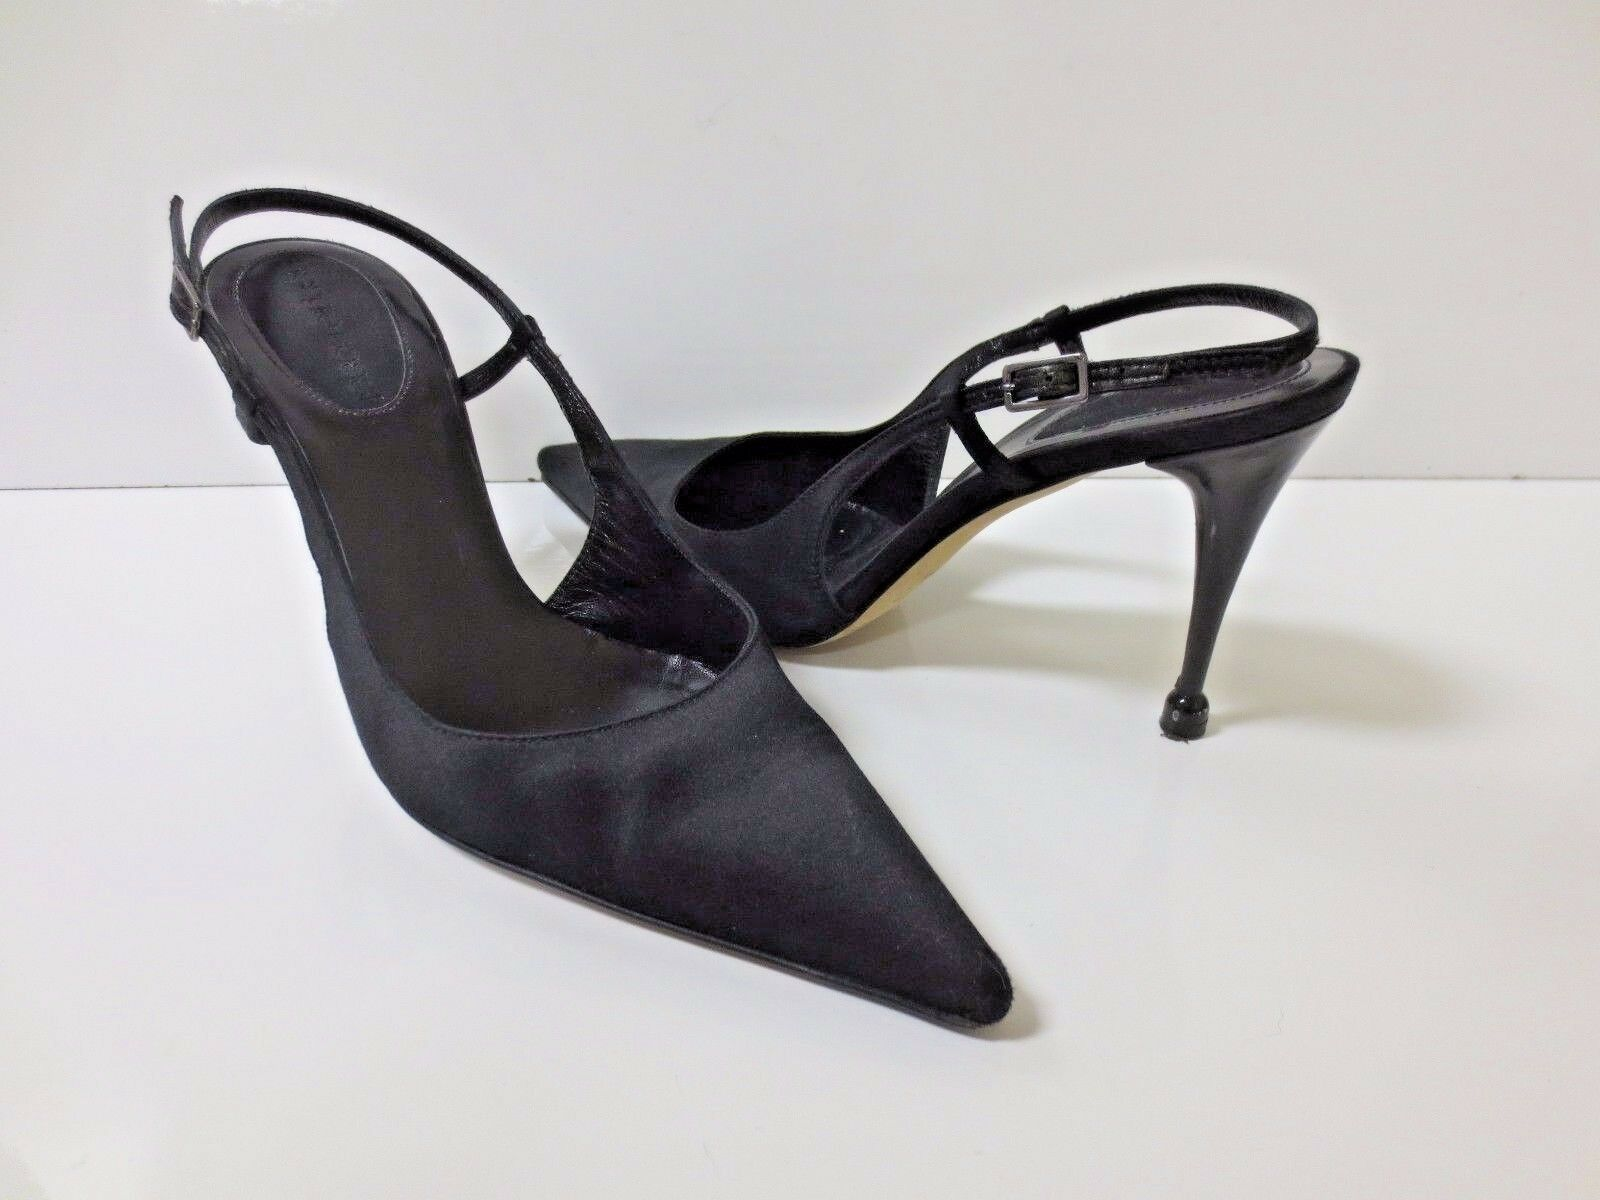 SERGIO ROSSI ROSSI ROSSI Black Satin Slingback Pumps shoes 37 EUC bad2d9